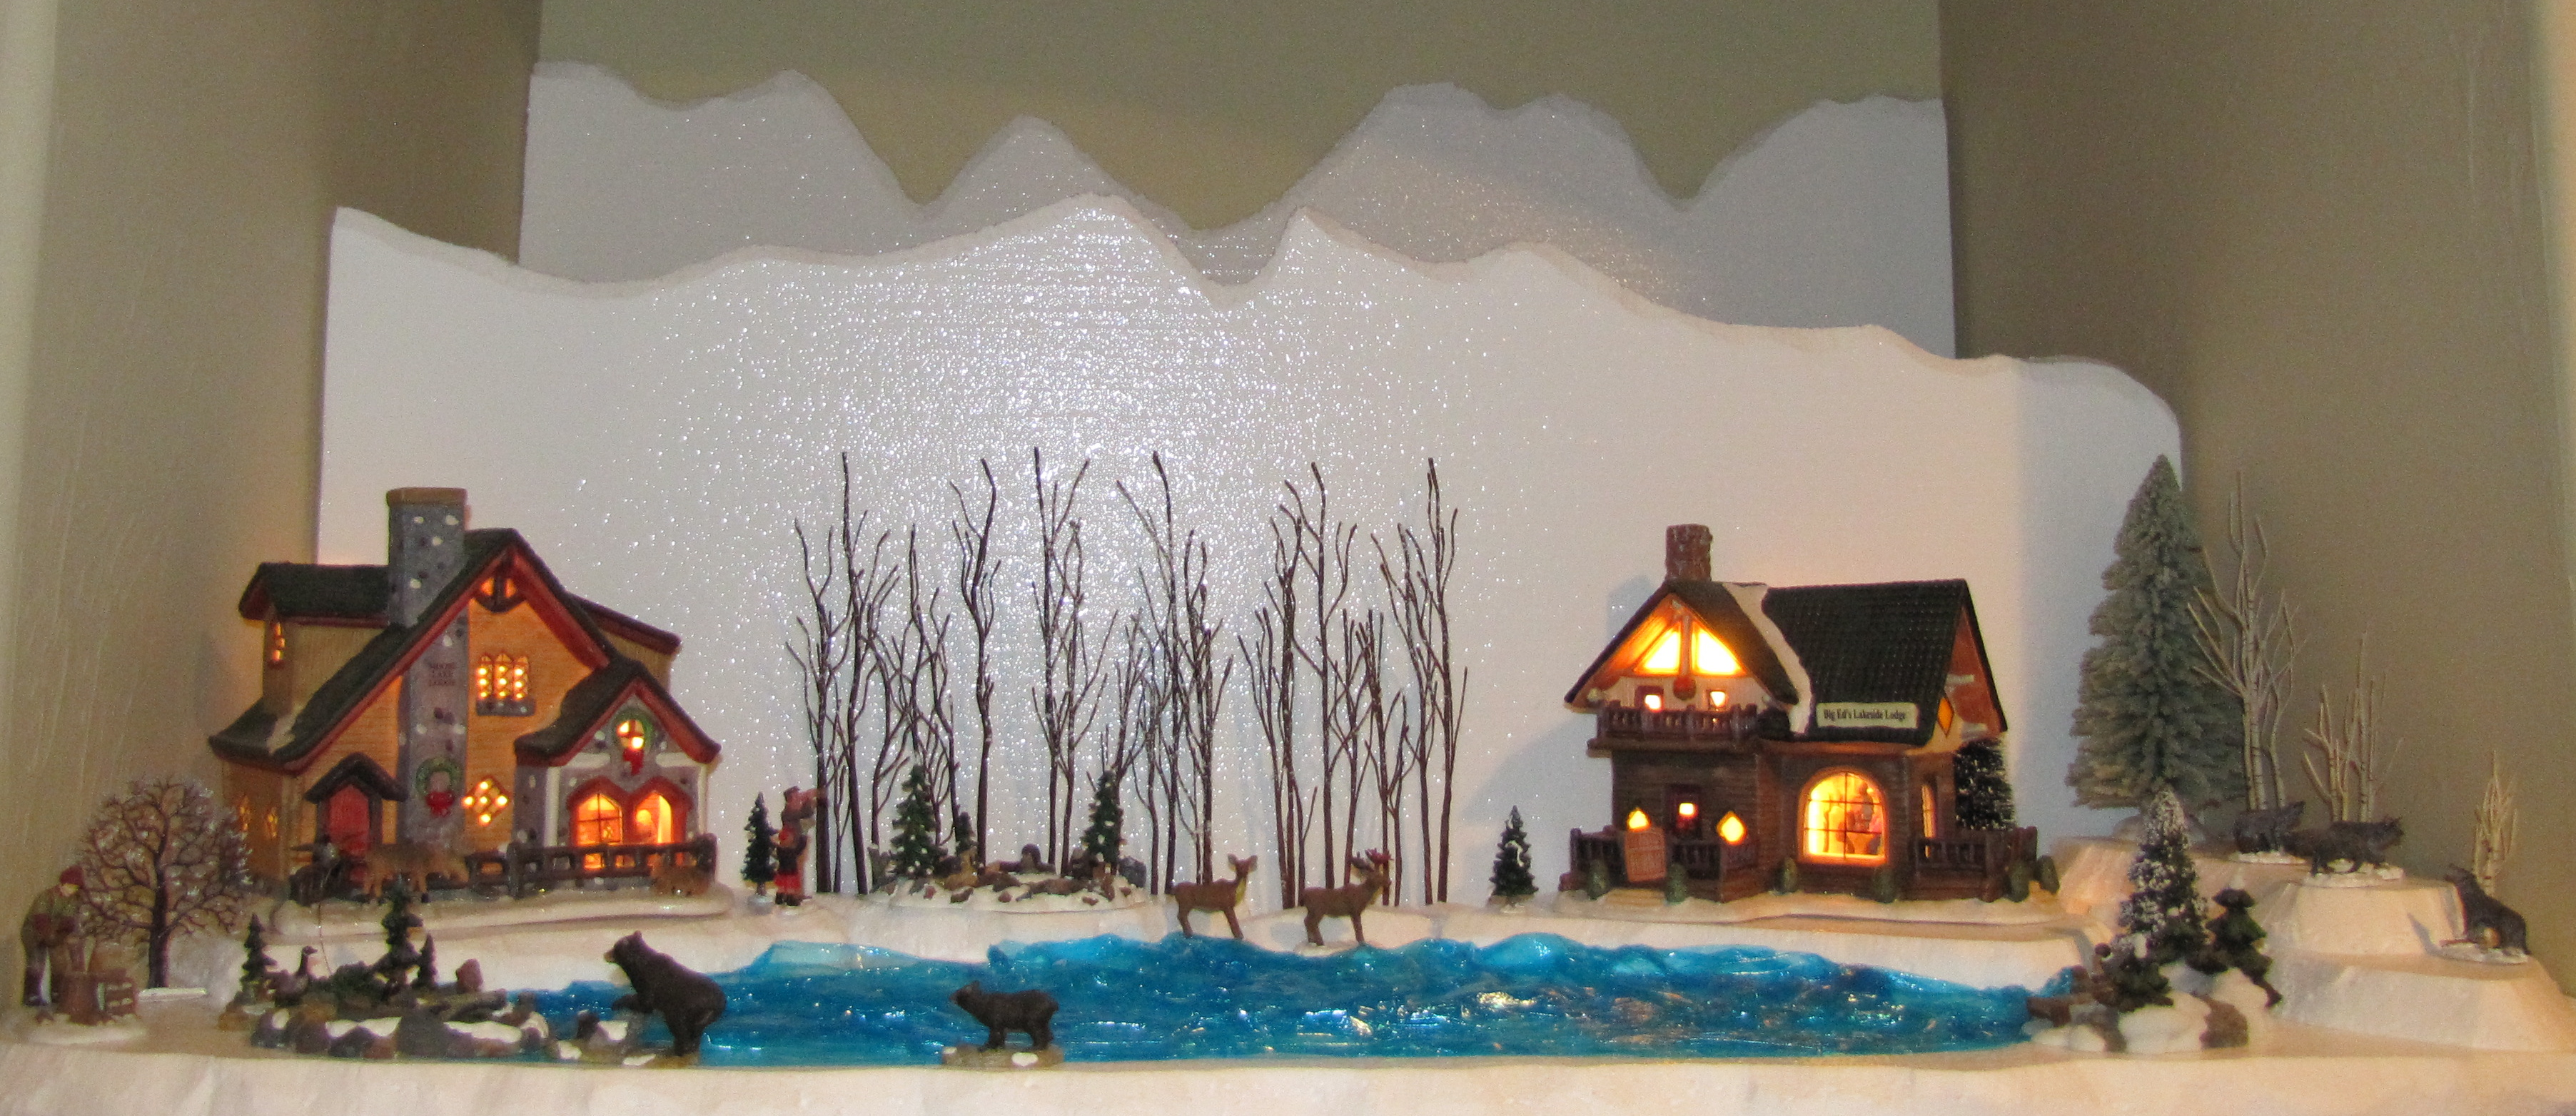 Christmas Village Display | Getting to know CO